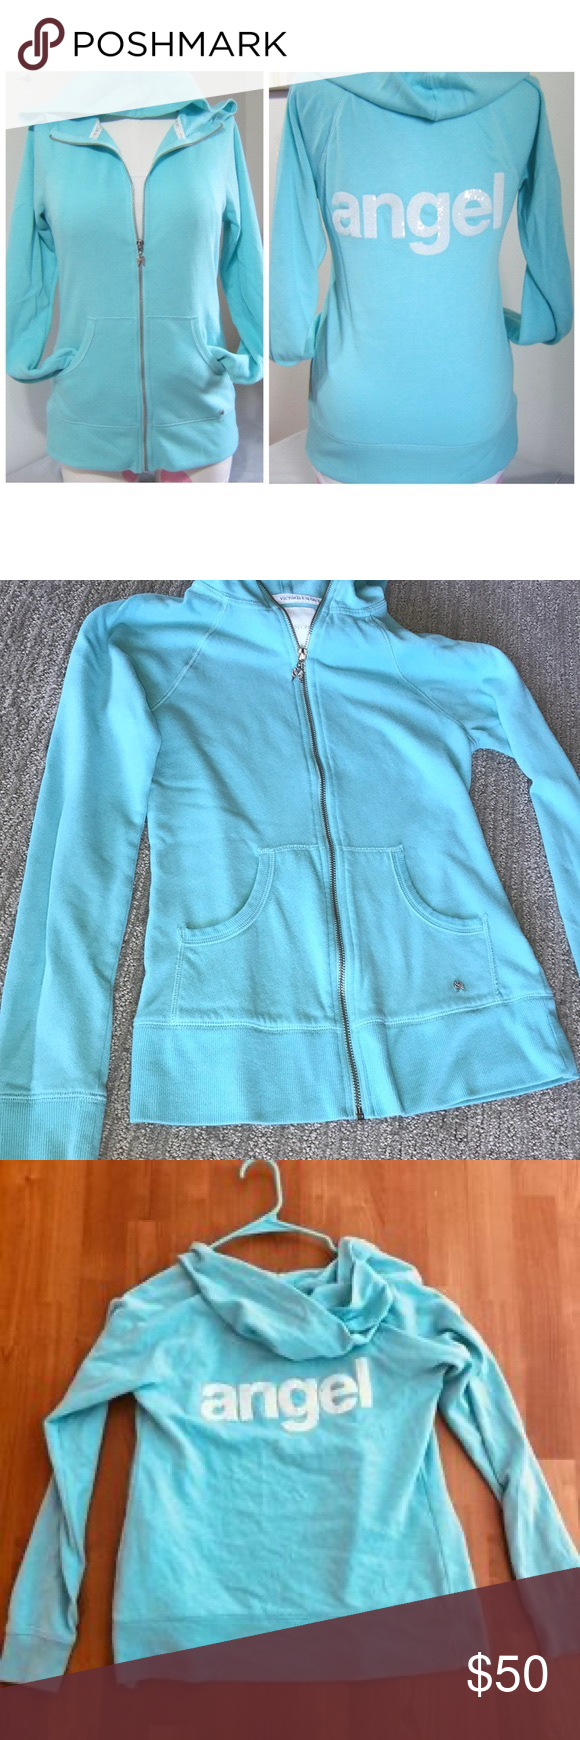 Aqua Victoria secret angel hoodie New without tags Victoria secrets angel hoodie RARE- VS fashion show is no more :(  Angel graphic on the back Victoria's Secret Jackets & Coats #Angel #Aqua #fashion #Graphic #Hoodie #RARE #secret #Secrets #Show #Tags #Víctor #victoria